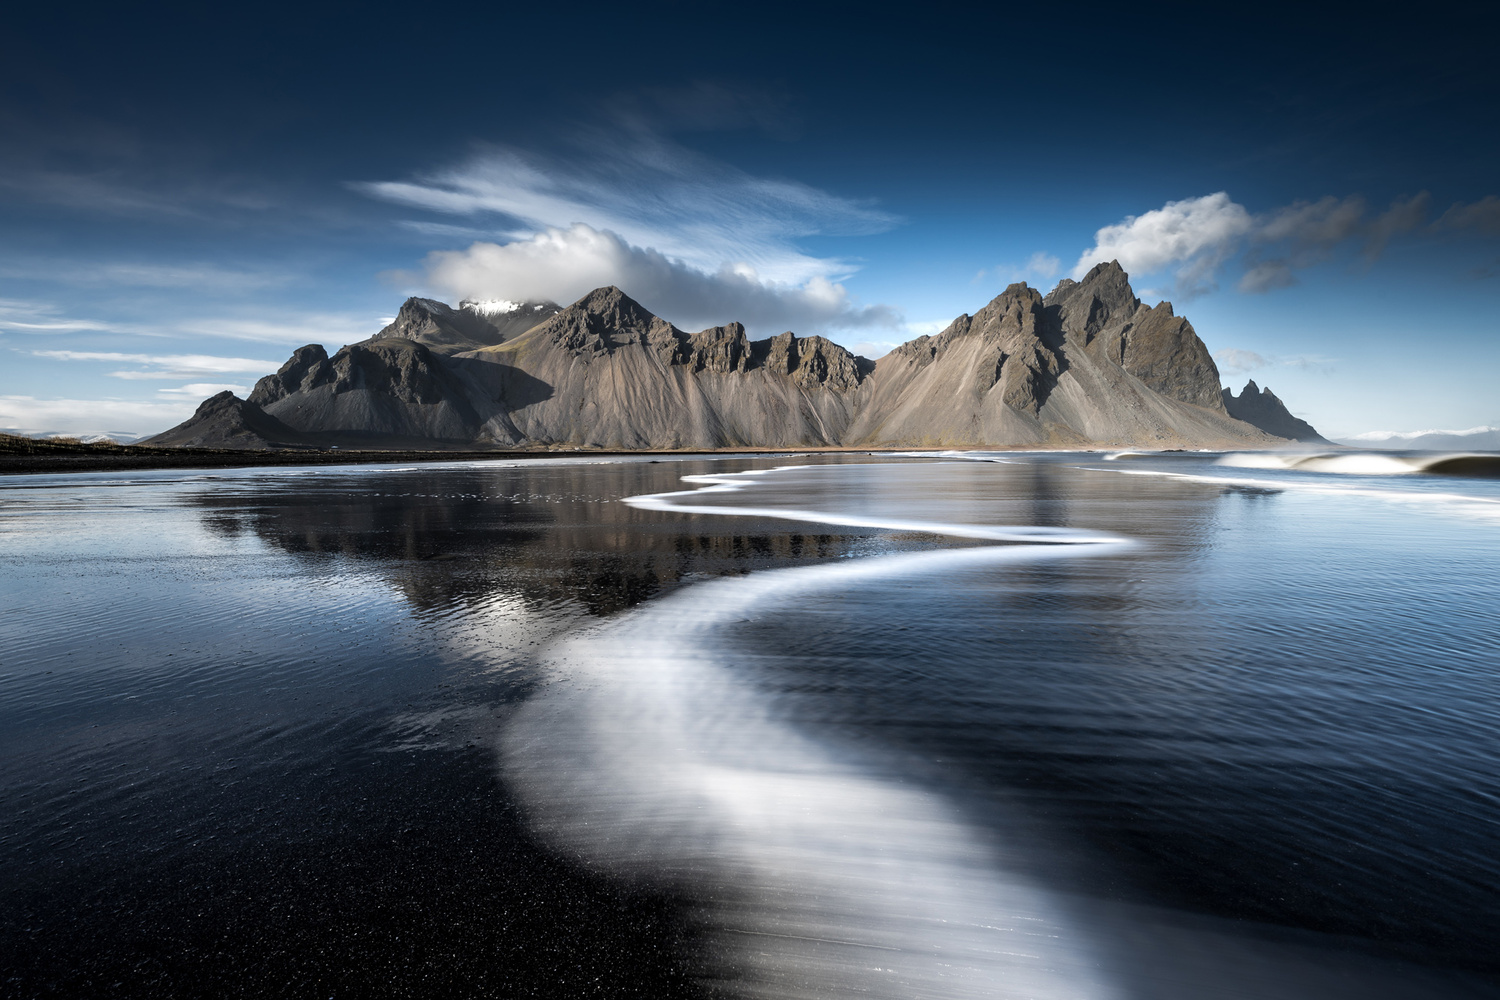 Stokksnes leading line by Mads Peter Iversen